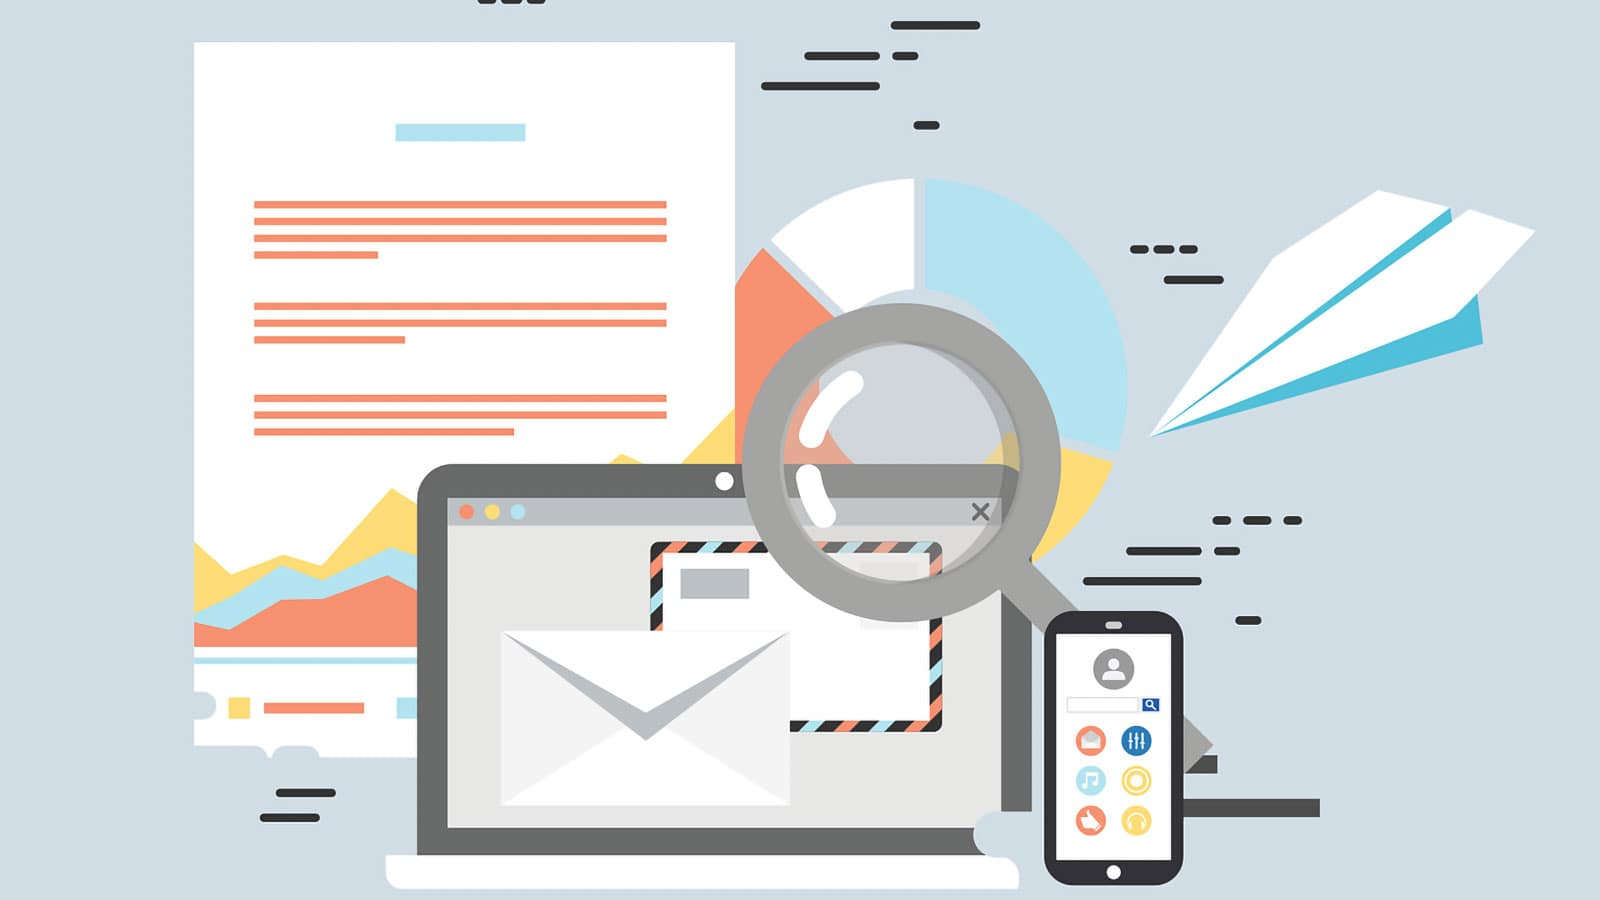 7 Design Elements for Email Marketing Campaigns